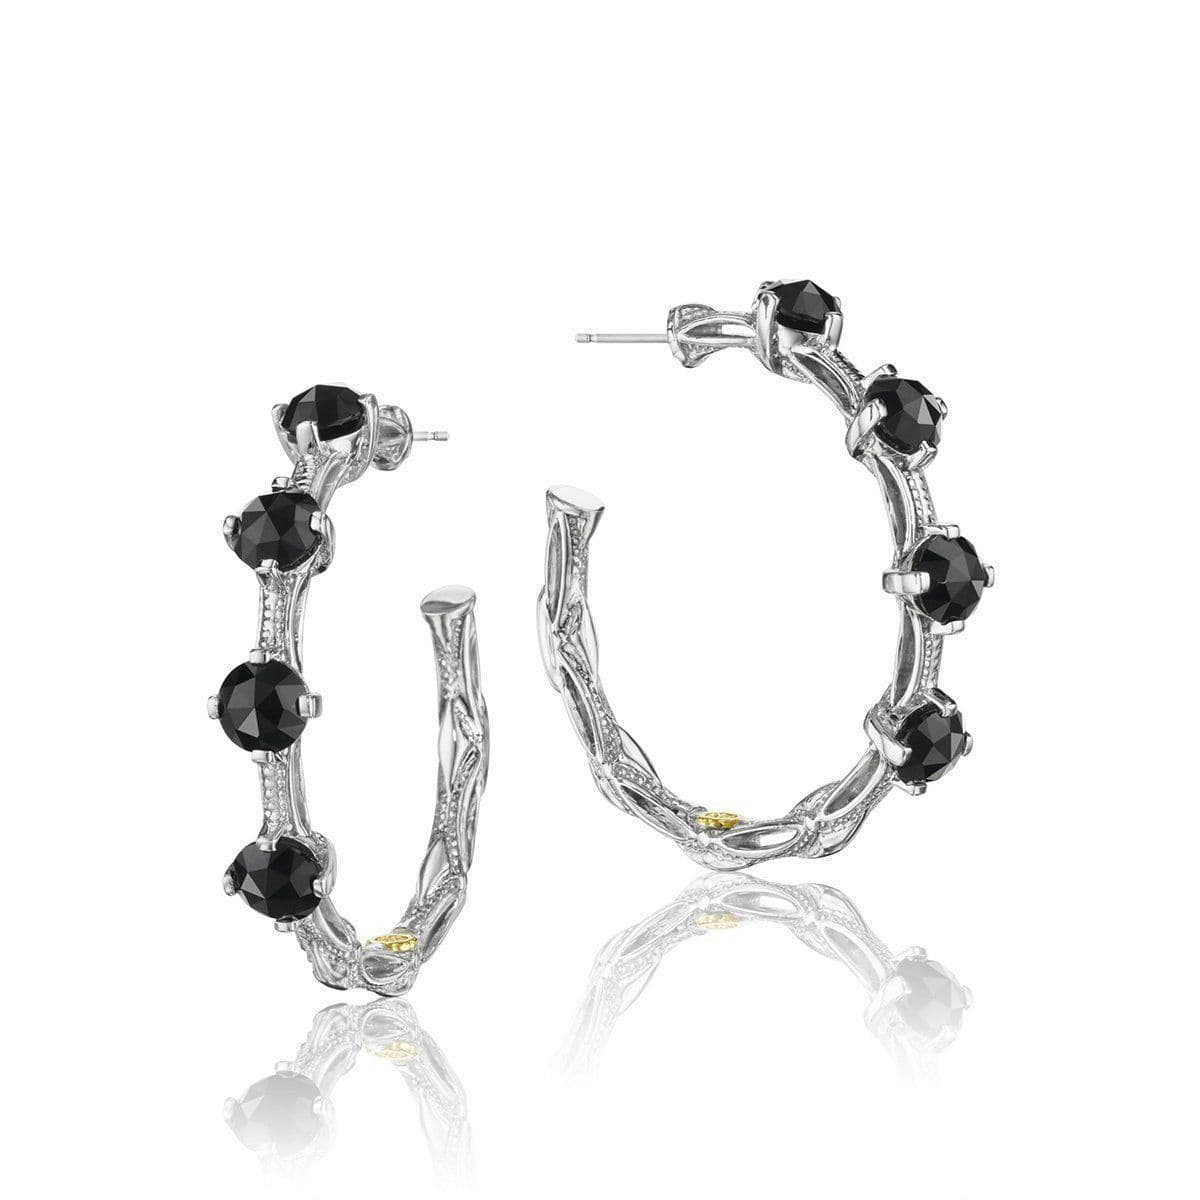 Silver Classic Rock Black Onyx Hoop Earrings - SE13819-Tacori-Renee Taylor Gallery